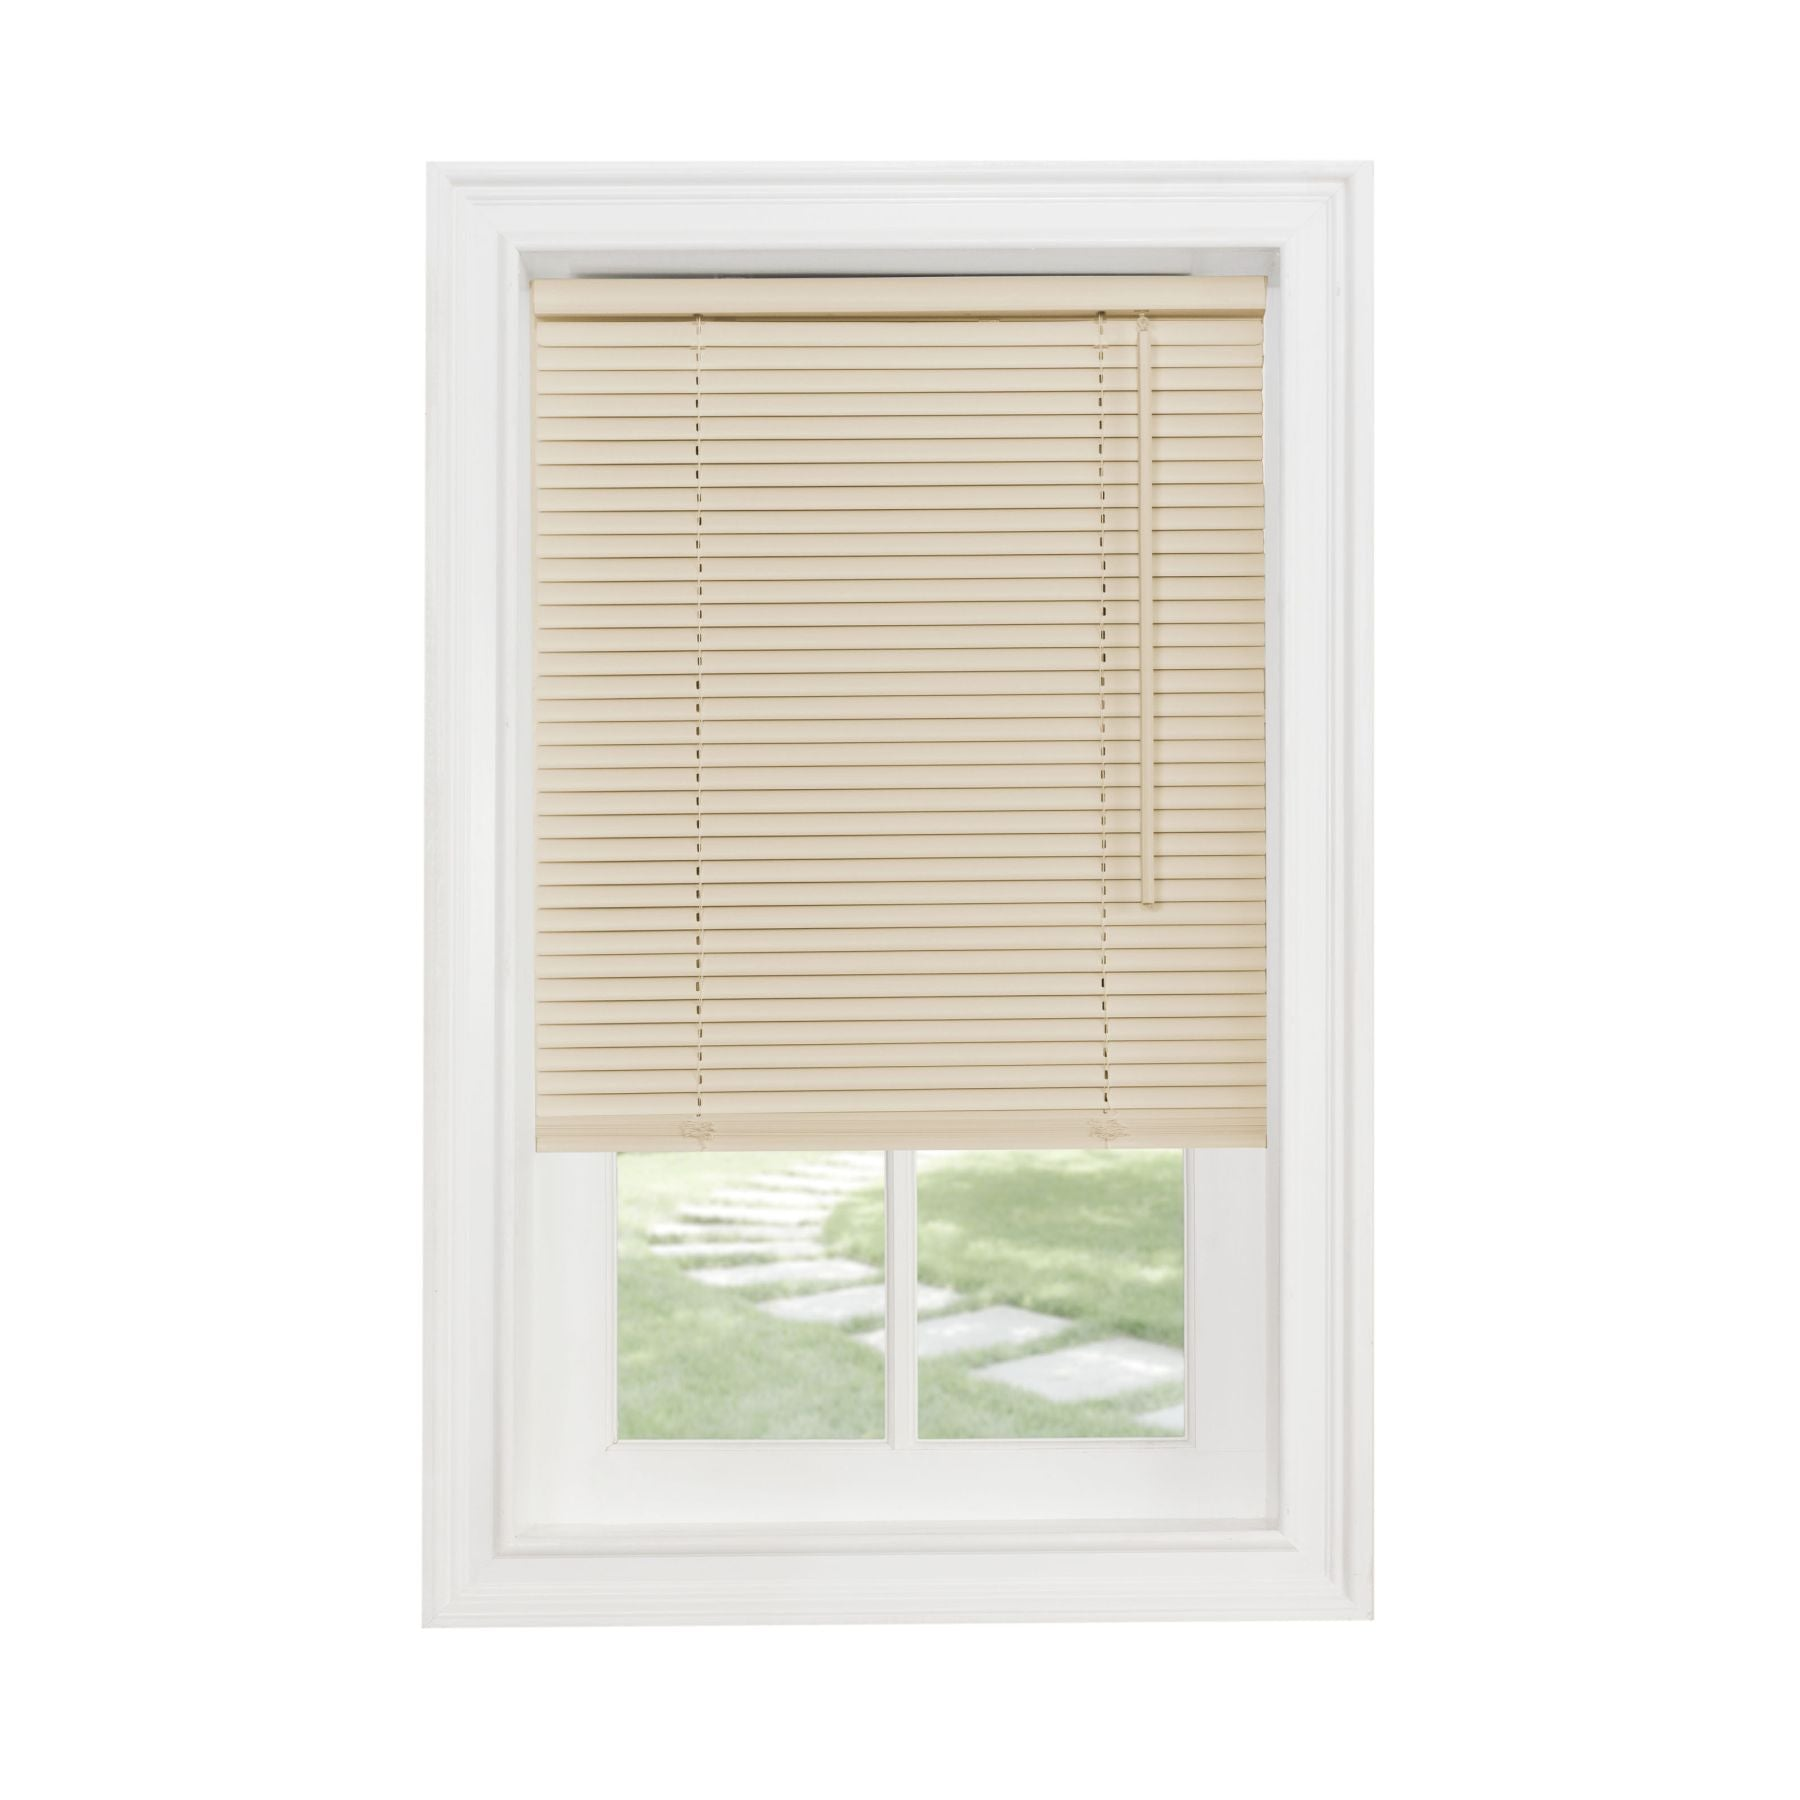 "Traditional Elegance Cordless Sunrise 1"" Light Filtering Mini Blind 39x64 - Alabaster"